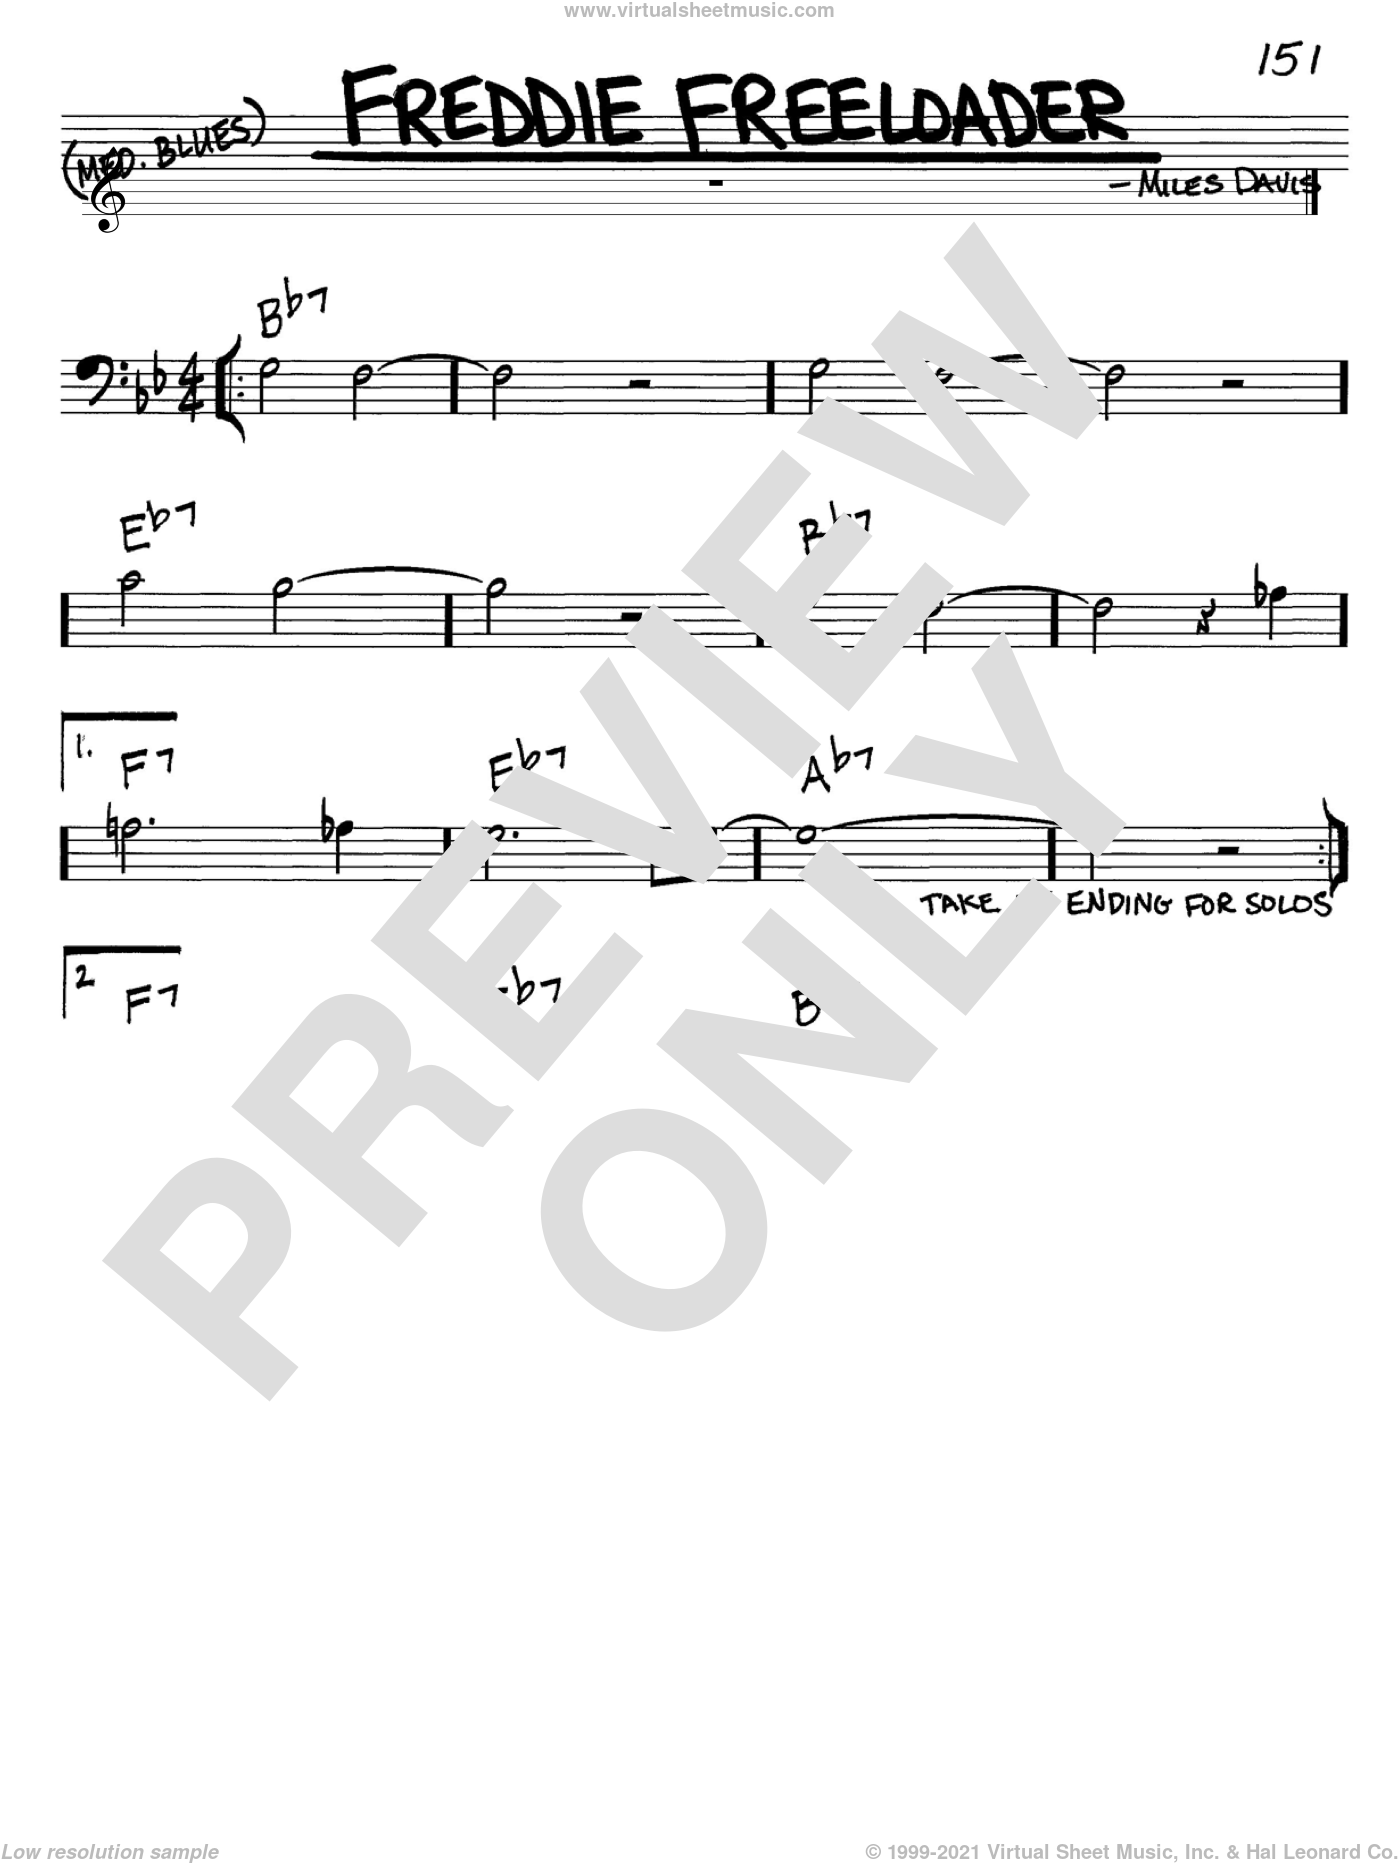 Freddie Freeloader sheet music for voice and other instruments (bass clef) by Miles Davis, intermediate skill level